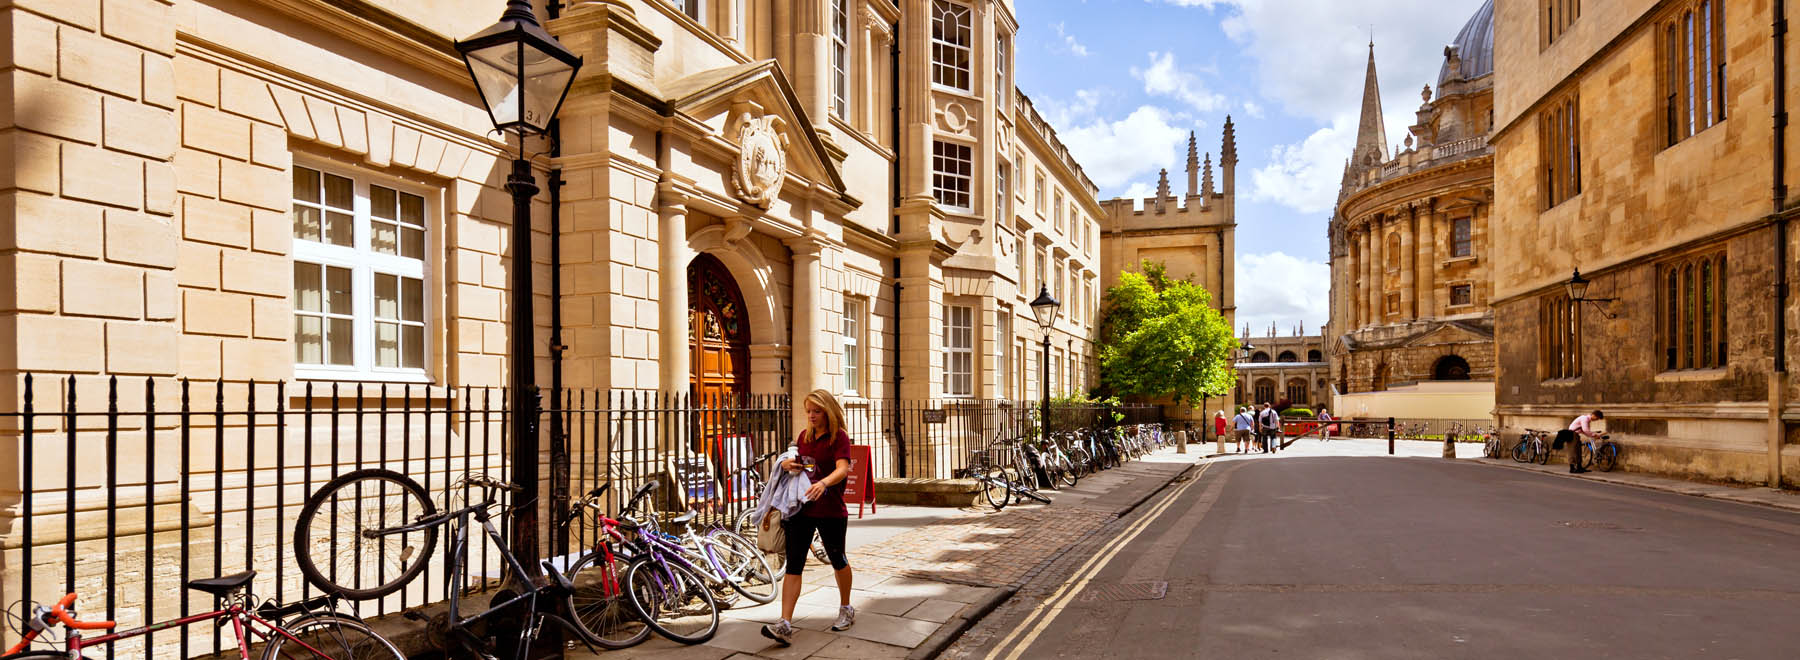 Student cities: studying in Oxford